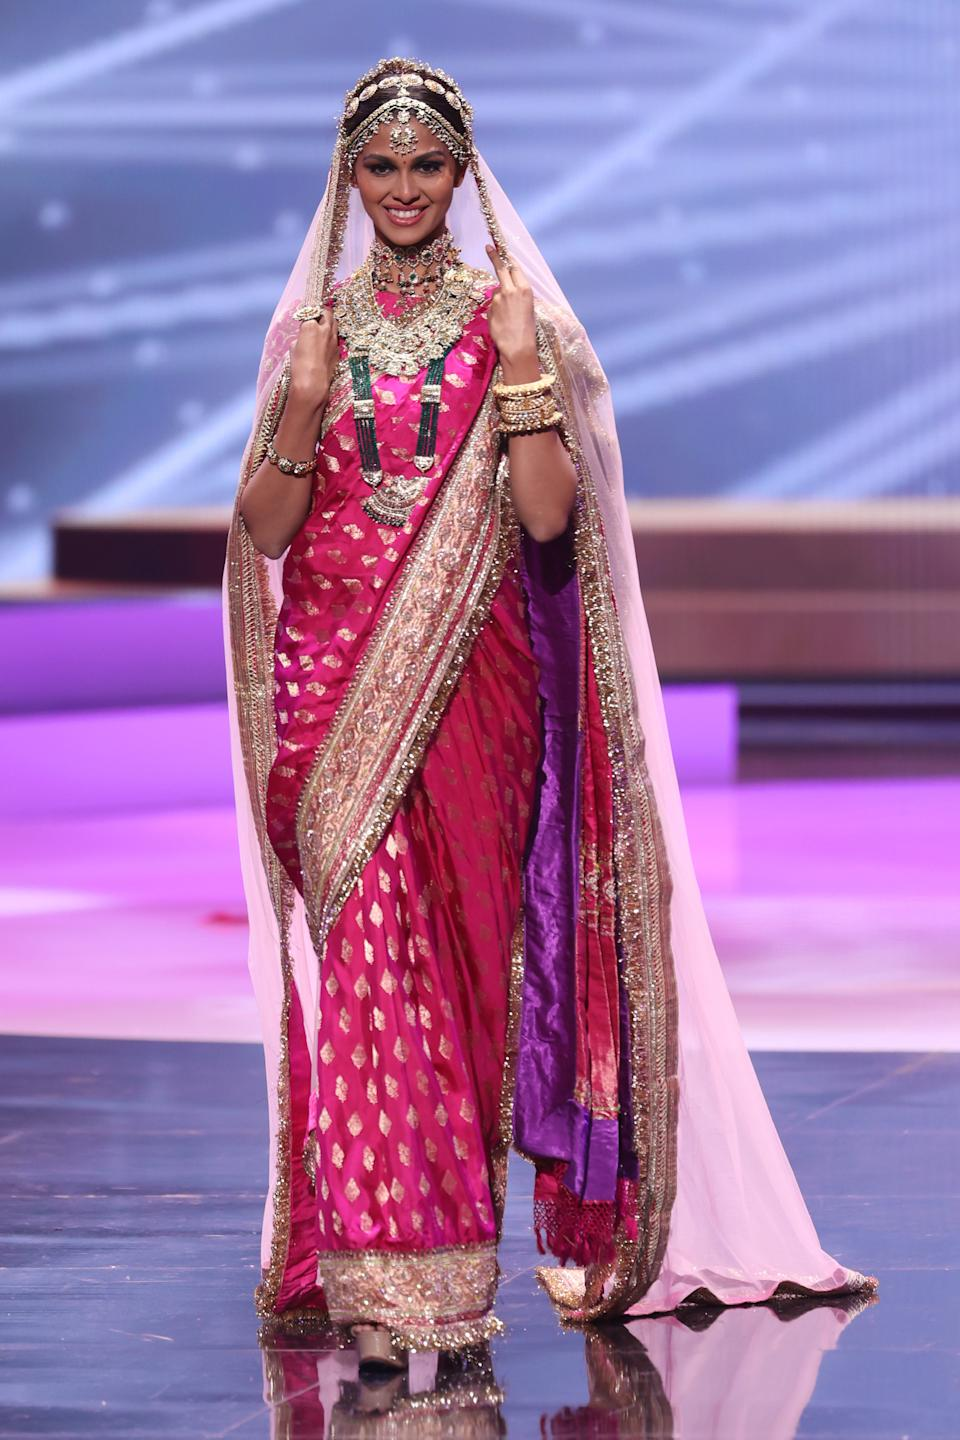 HOLLYWOOD, FLORIDA - MAY 13: Miss India Adline Castelino appears onstage at the 69th Miss Universe National Costume Show at Seminole Hard Rock Hotel & Casino on May 13, 2021 in Hollywood, Florida. (Photo by Rodrigo Varela/Getty Images)